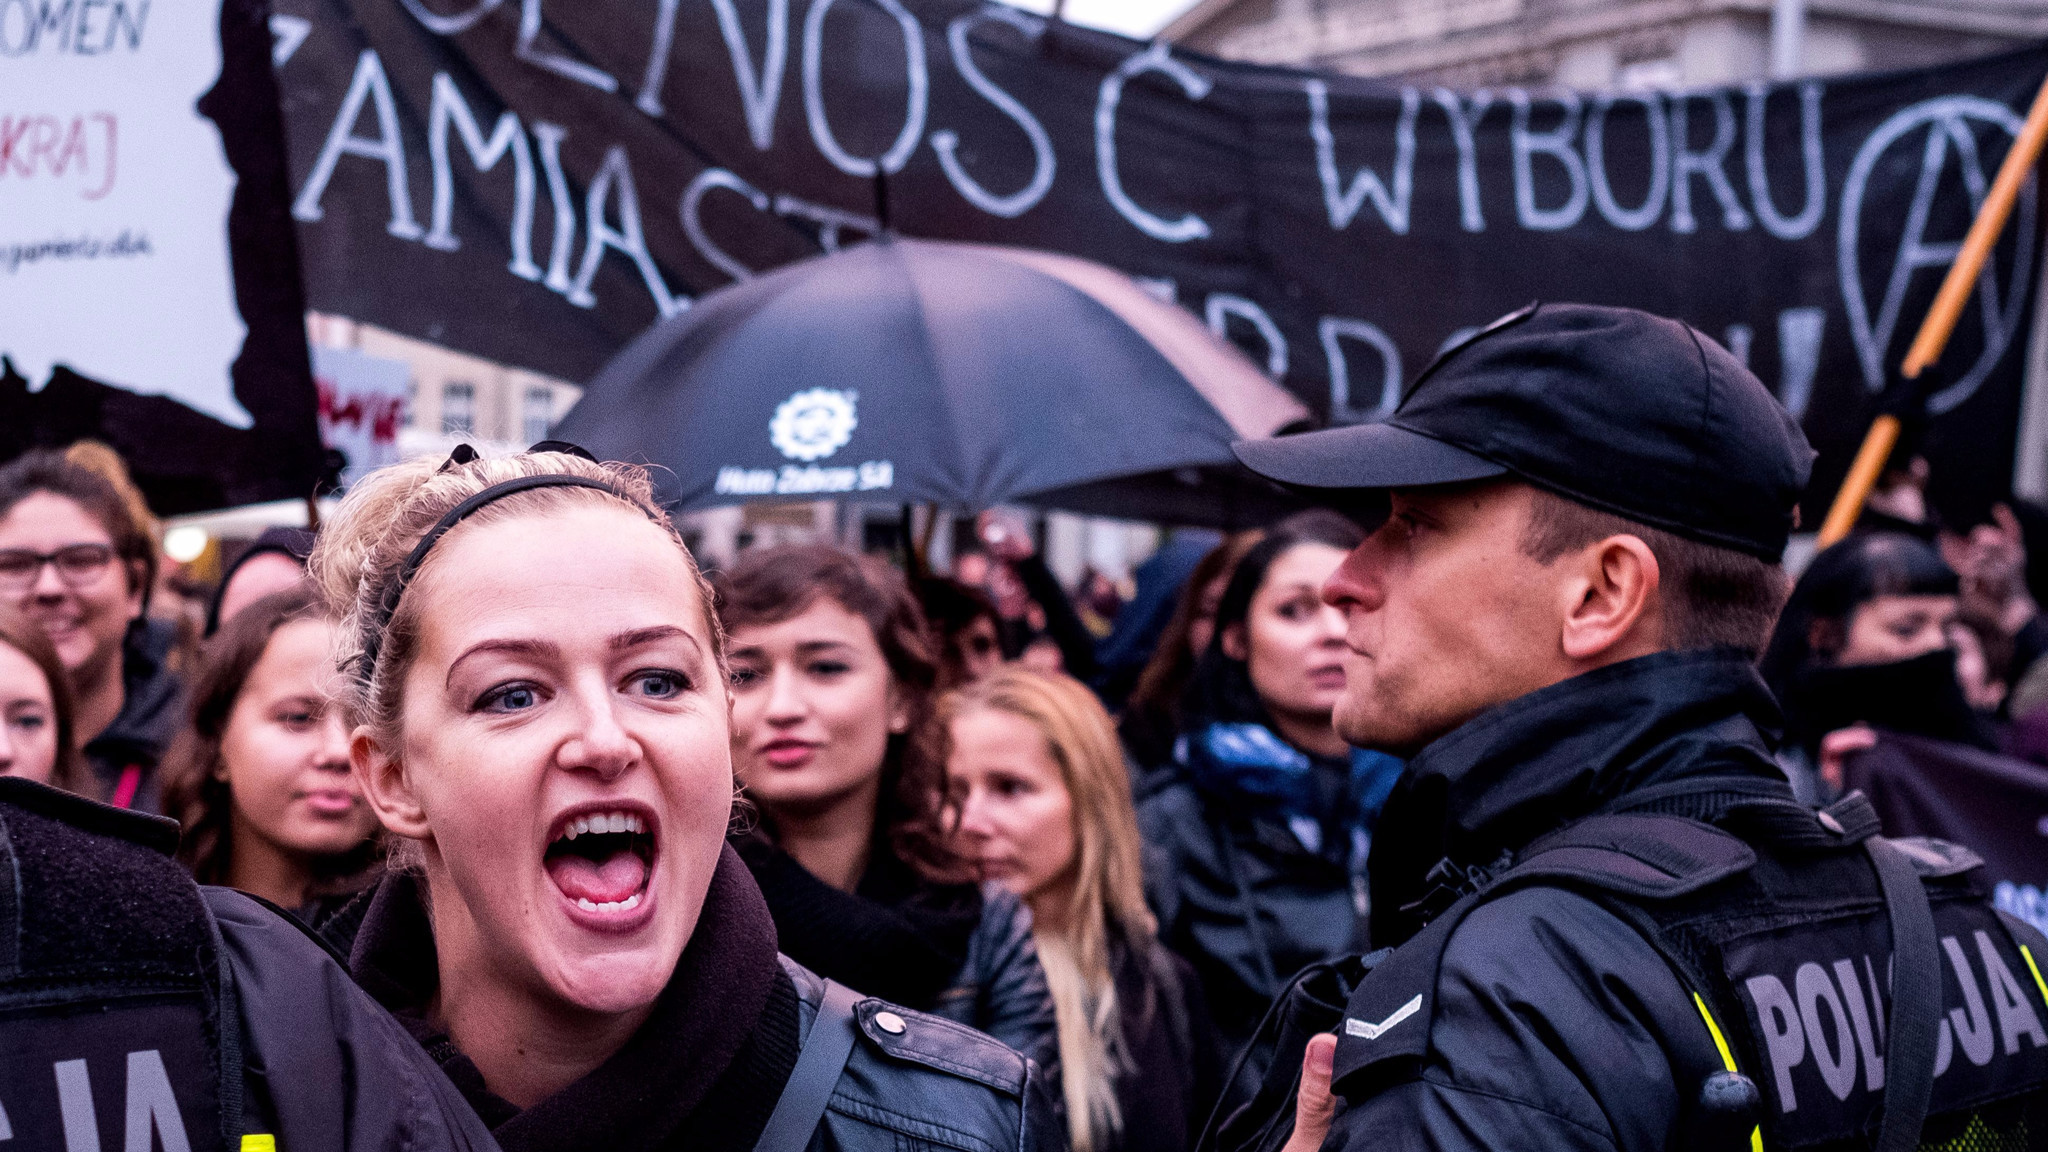 Women protest in Poland. Photo: Andrzej Grygiel/EPA